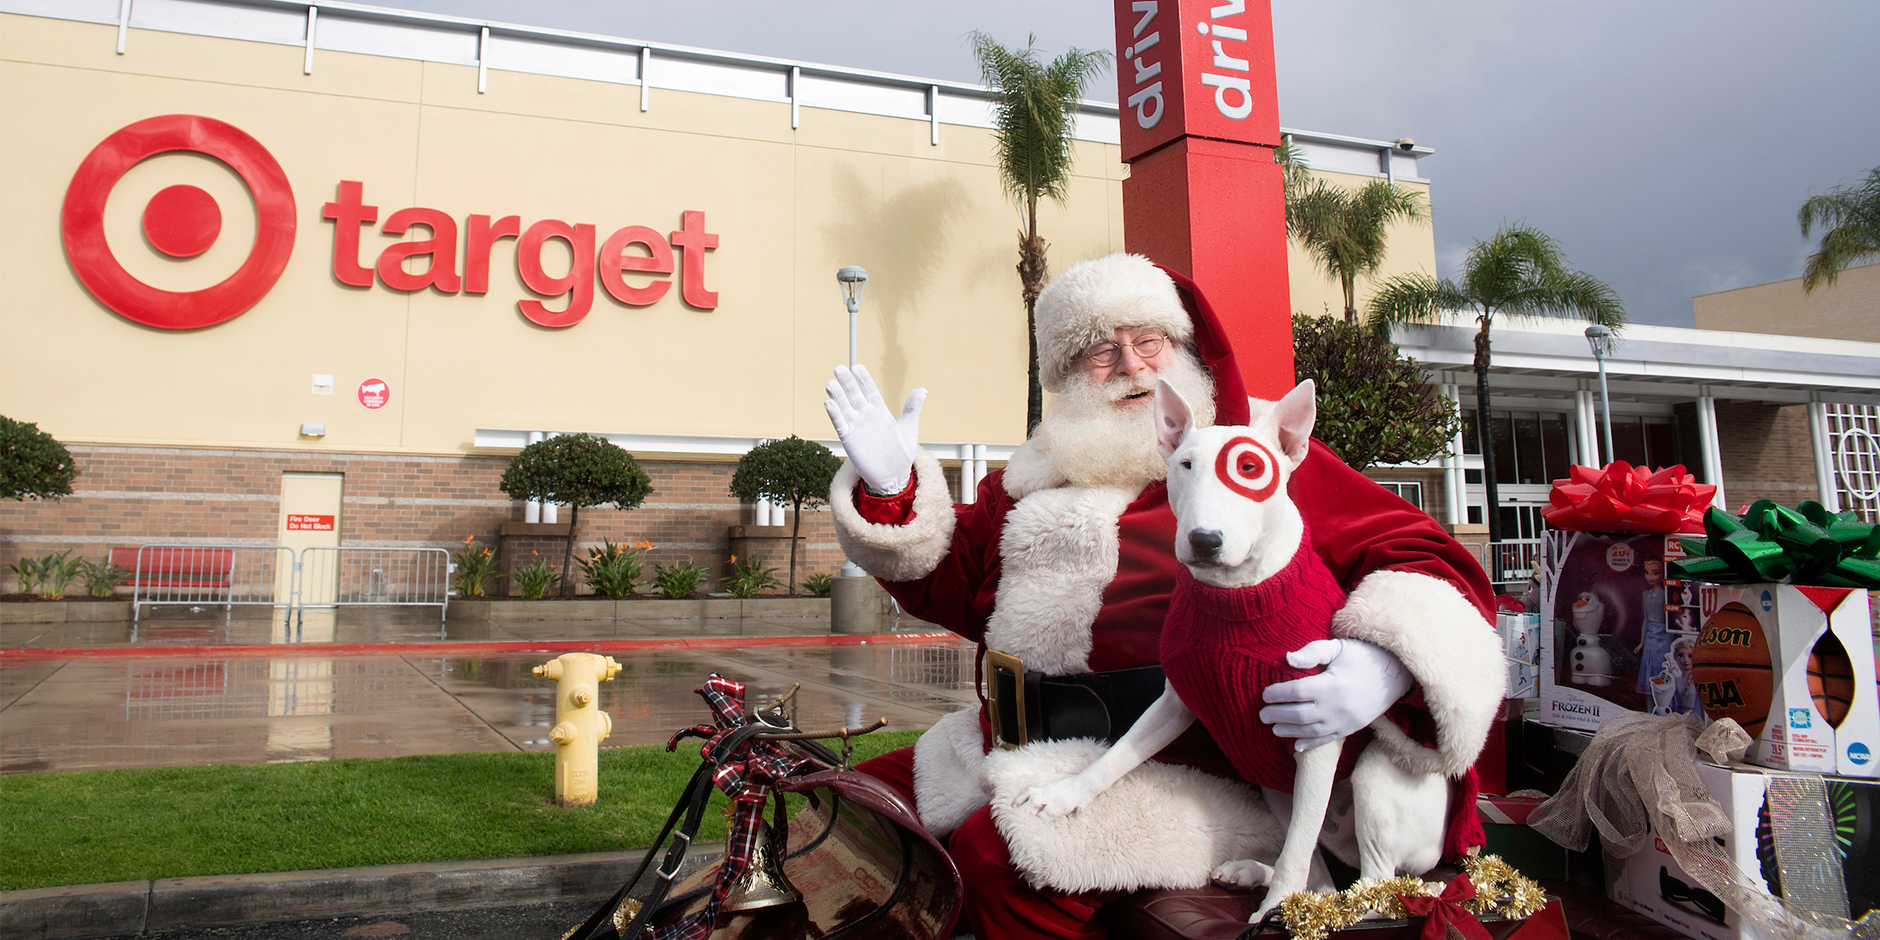 Santa and Bullseye the dog sit in a sleigh in Target's parking lot